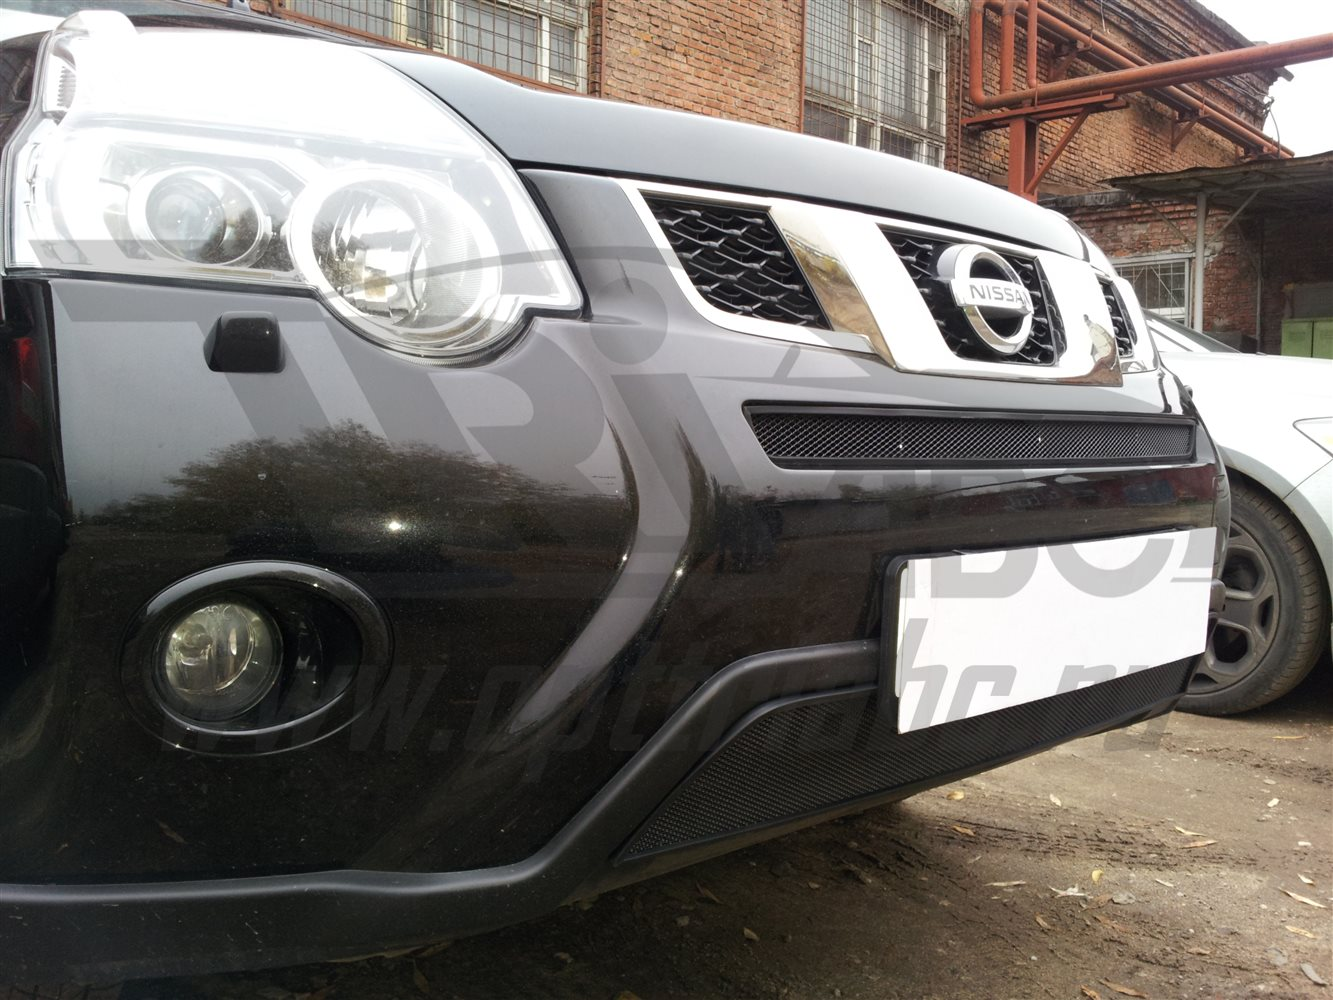 'Защита радиатора Nissan X-Trail 2011-2014 (Black)'